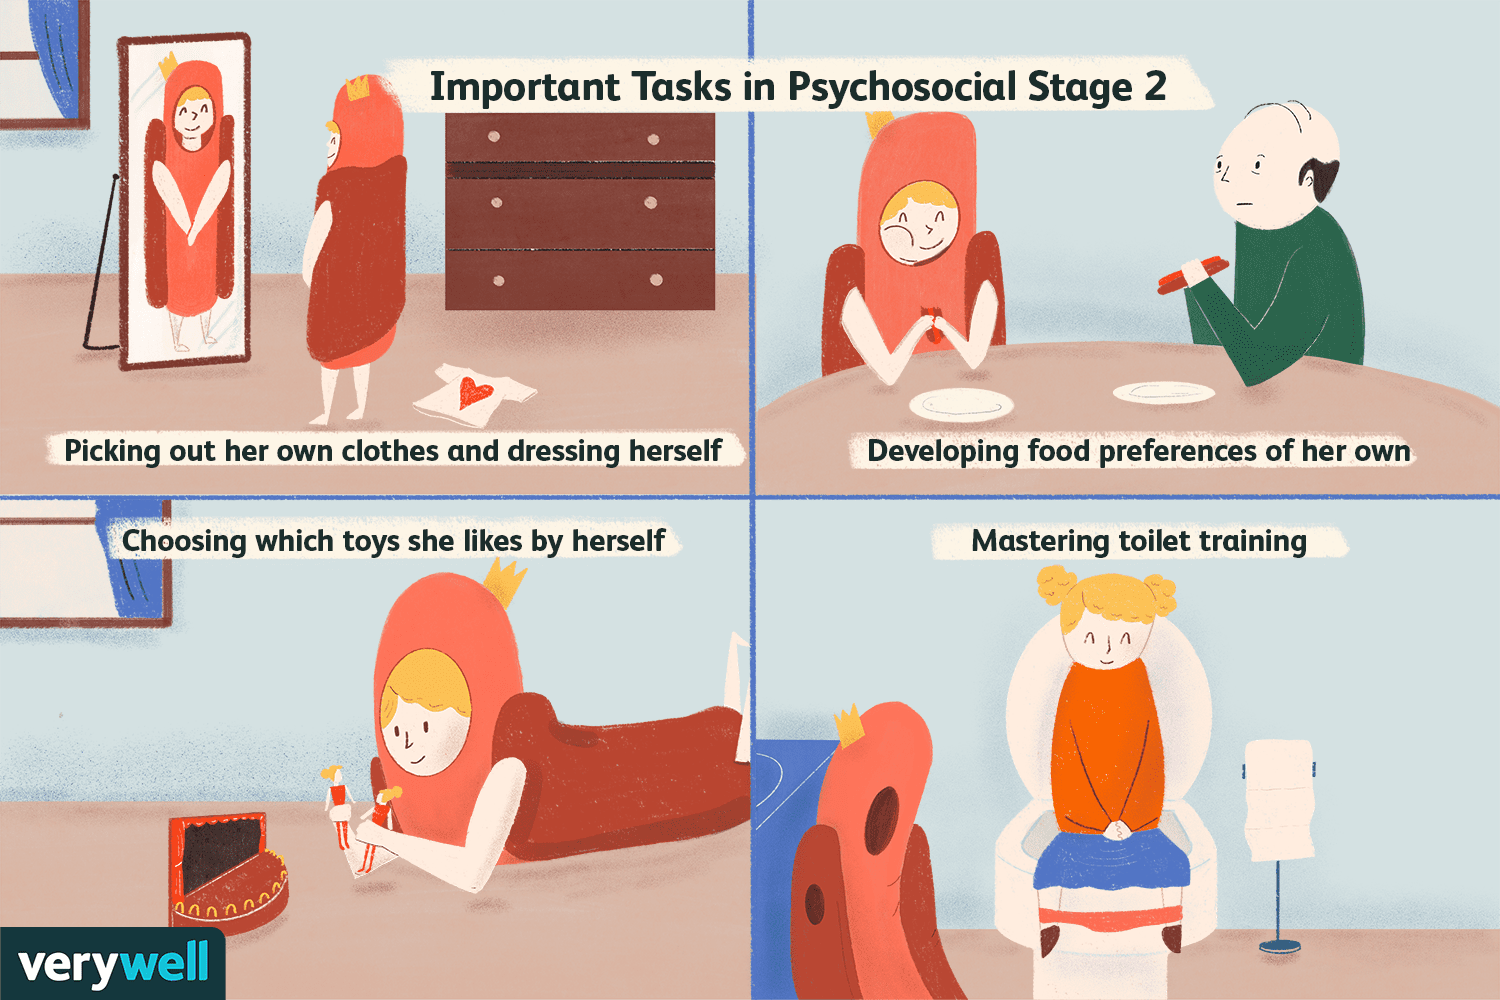 Important tasks in psychosocial stage 2